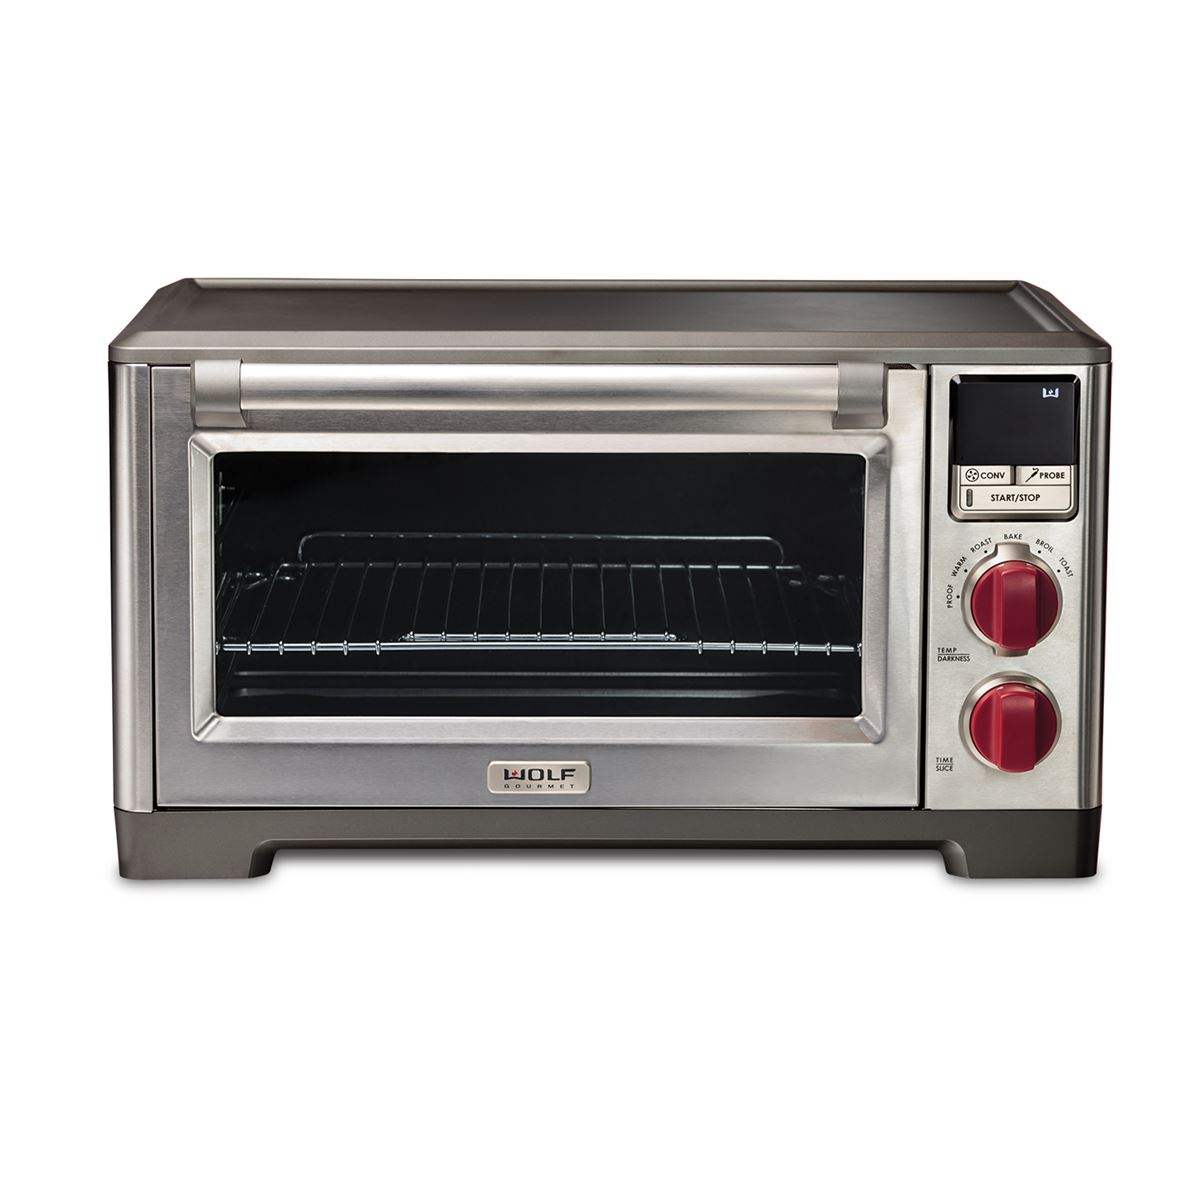 oven toasteroven the under best breville eats ovens serious emilydryden small toaster review